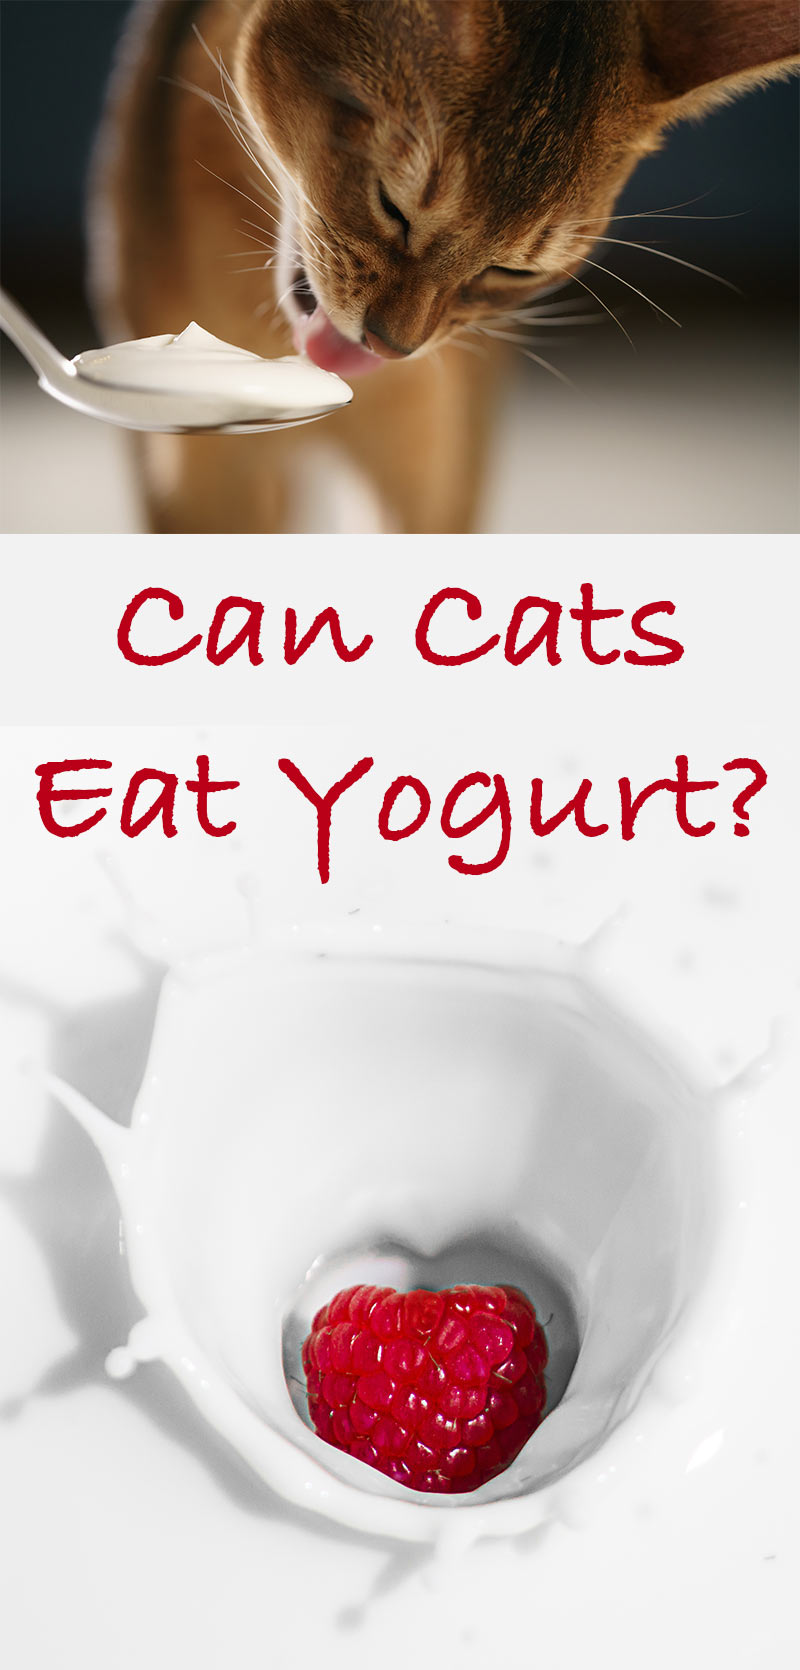 Can Cats Eat Yogurt A Cat Food Safety Guide From The Happy Cat Site